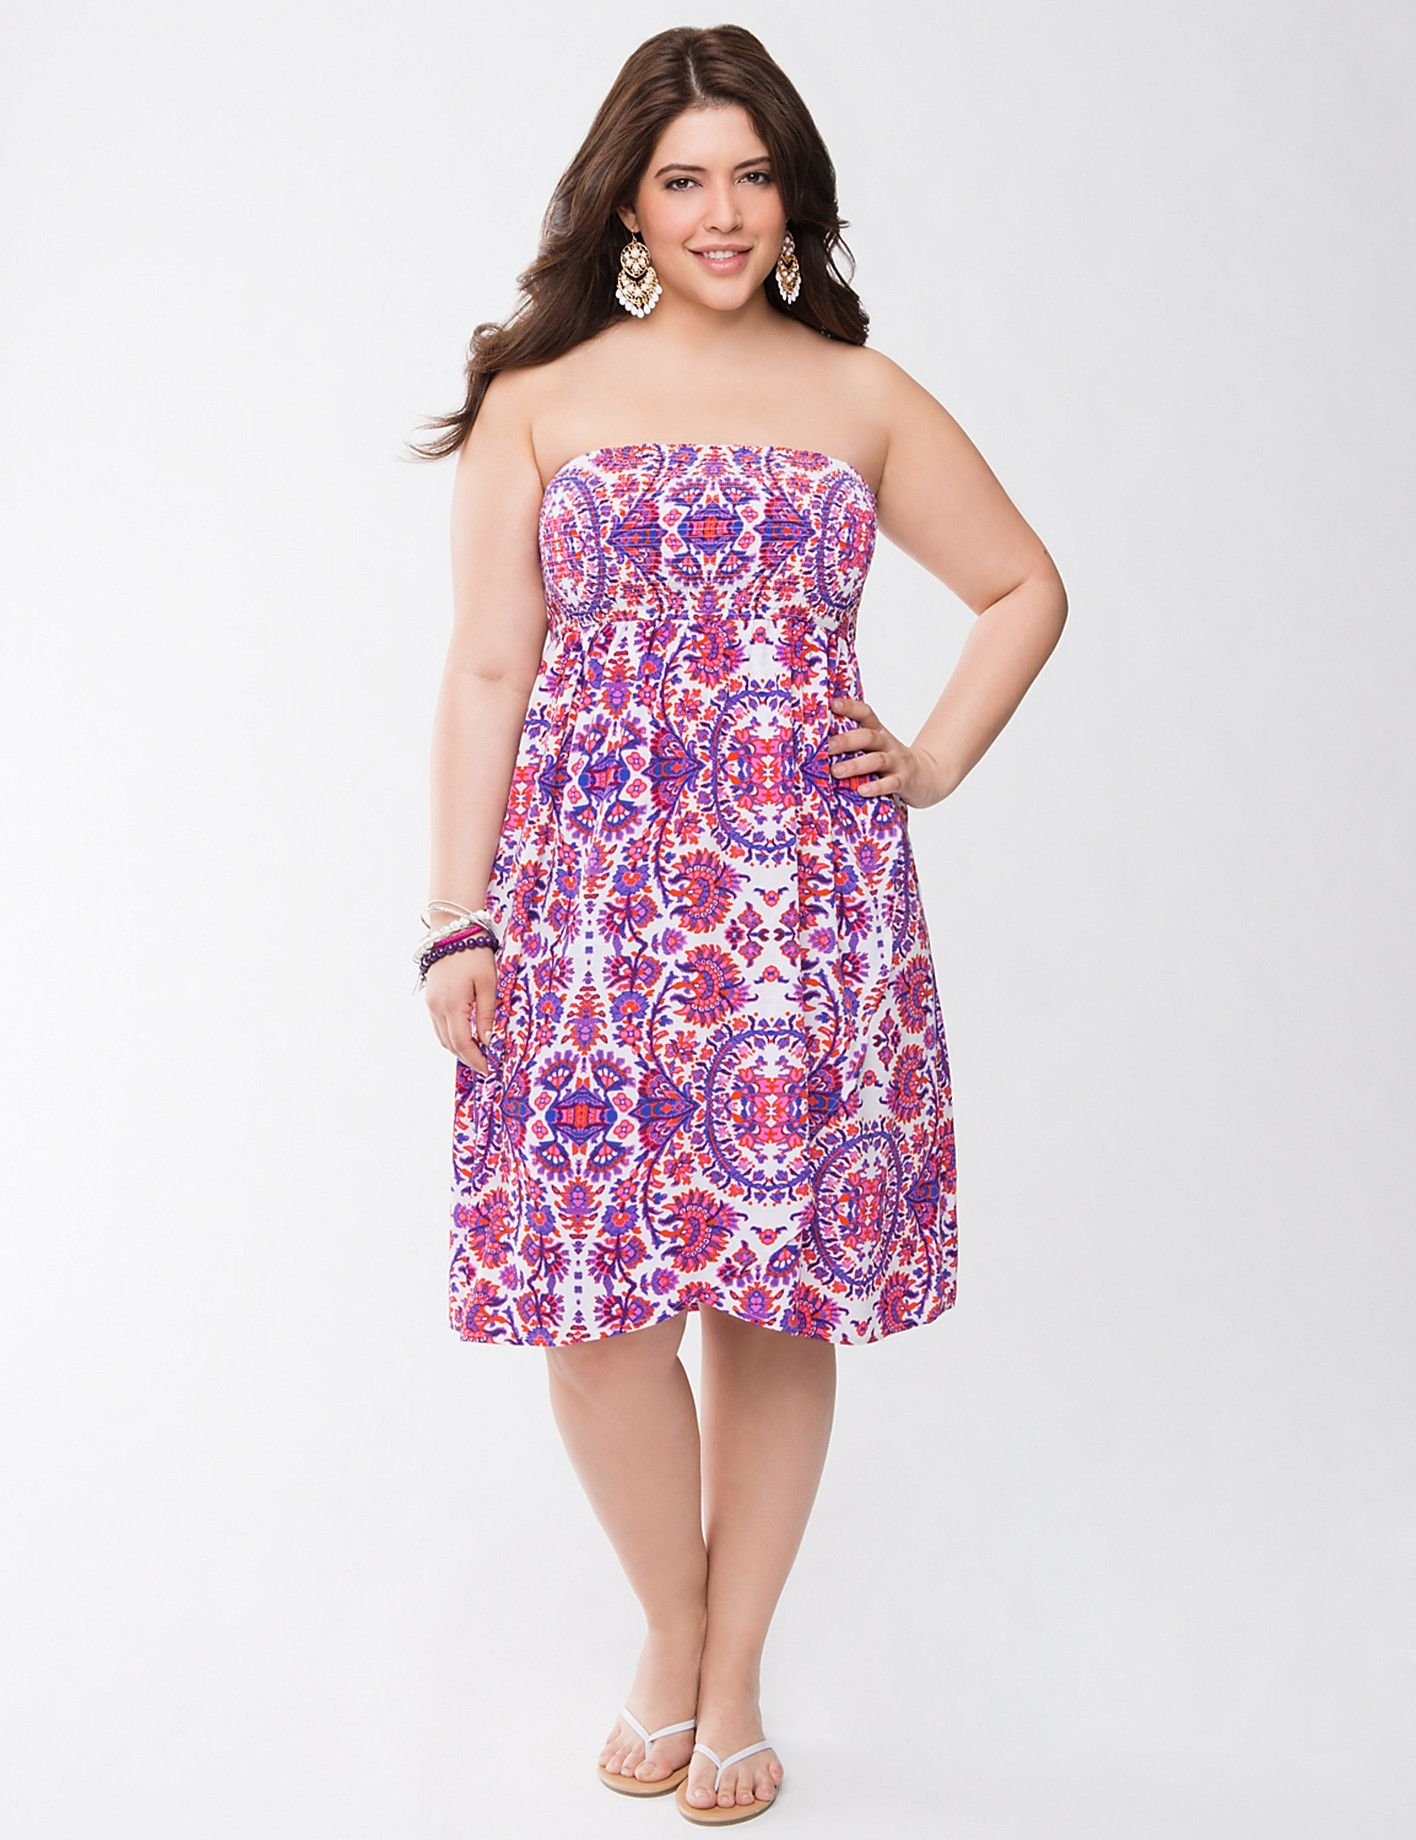 Batik smocked tube dress by Lane Bryant | Lane Bryant | Like | Pinterest